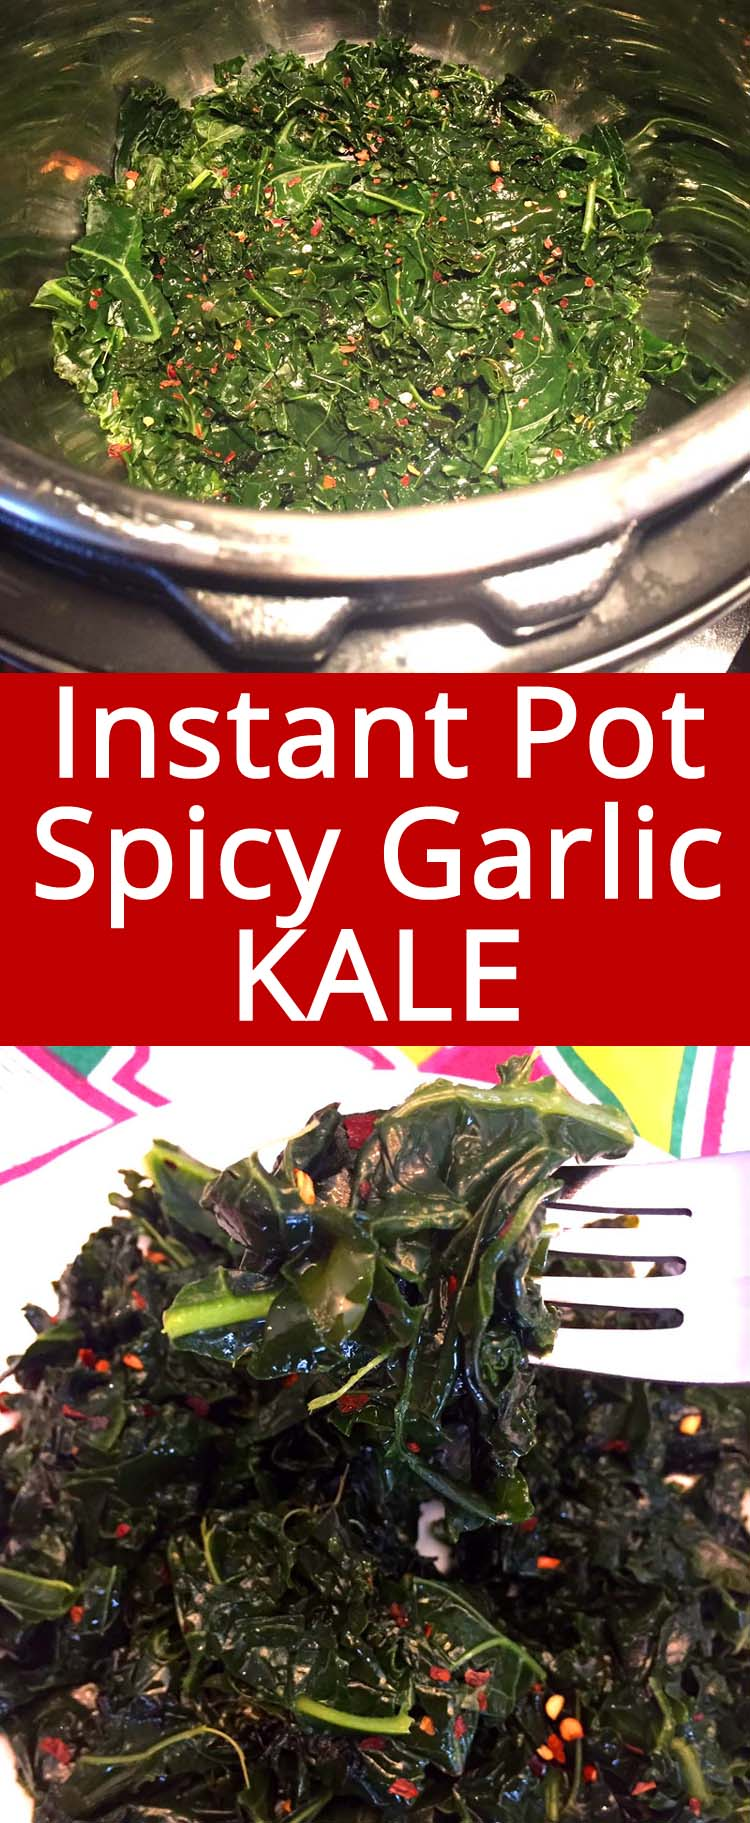 This Instant Pot kale is amazing! Cooking kale in the Instant Pot is so easy and it comes out perfect! Yummy and healthy!